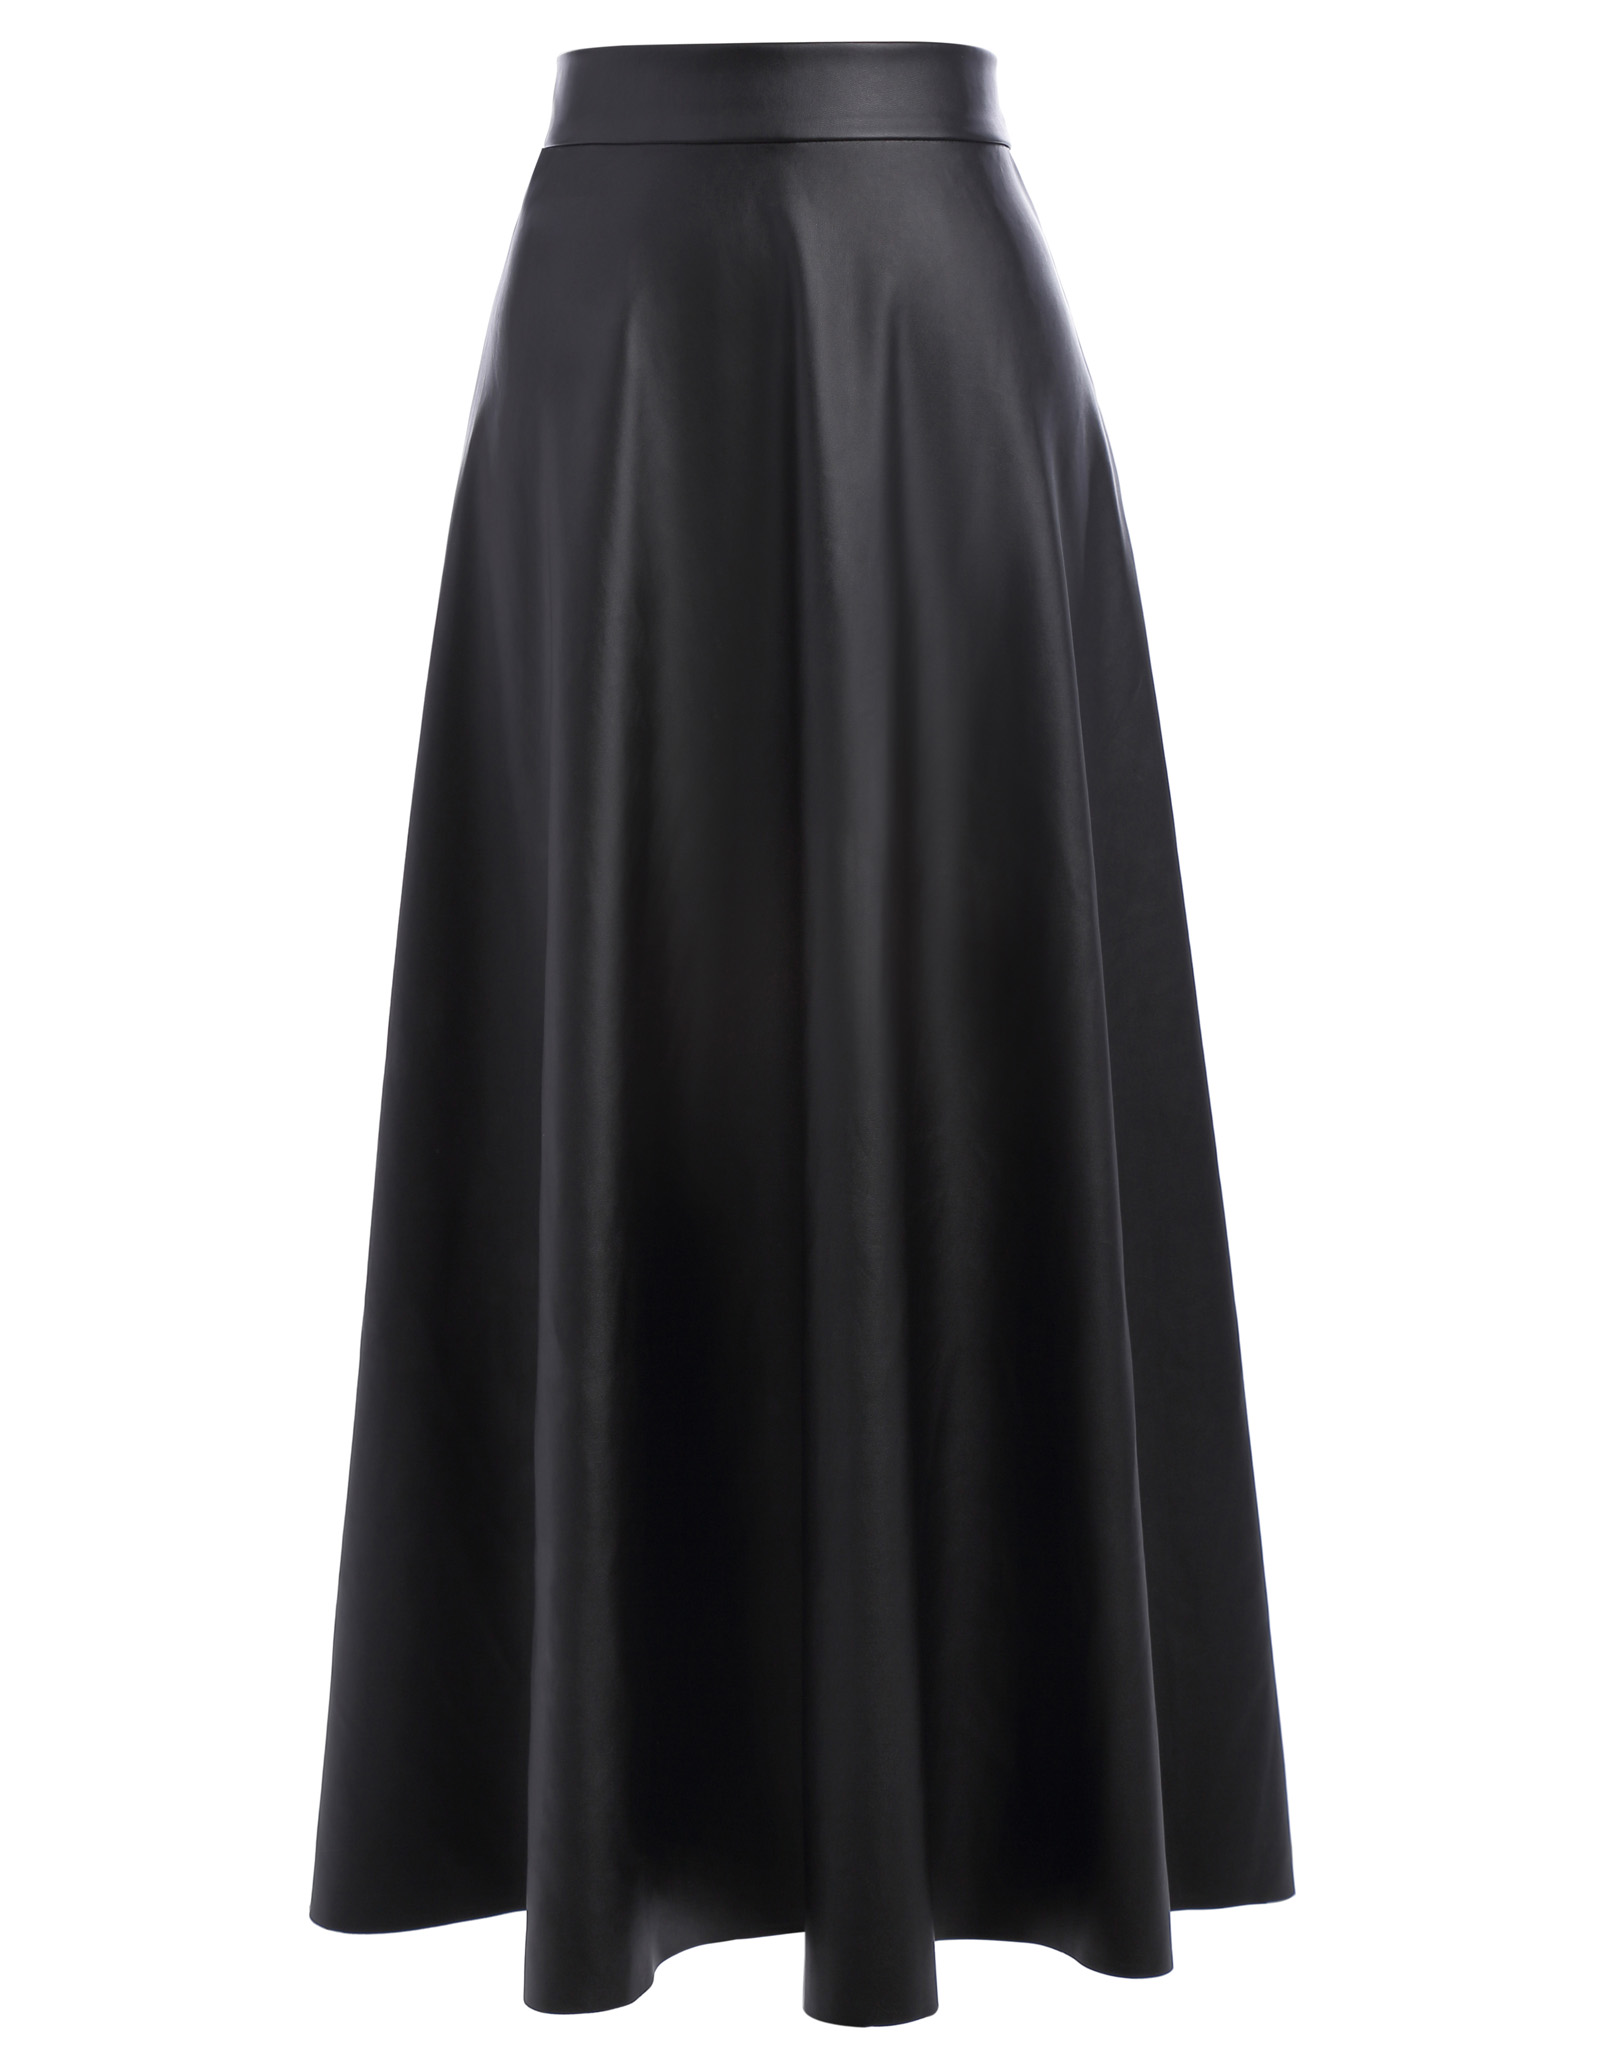 2018 Autumn Winter Women Skirt Fashion PU Leather Solid Long Skirt High Waist Pleated Sw ...